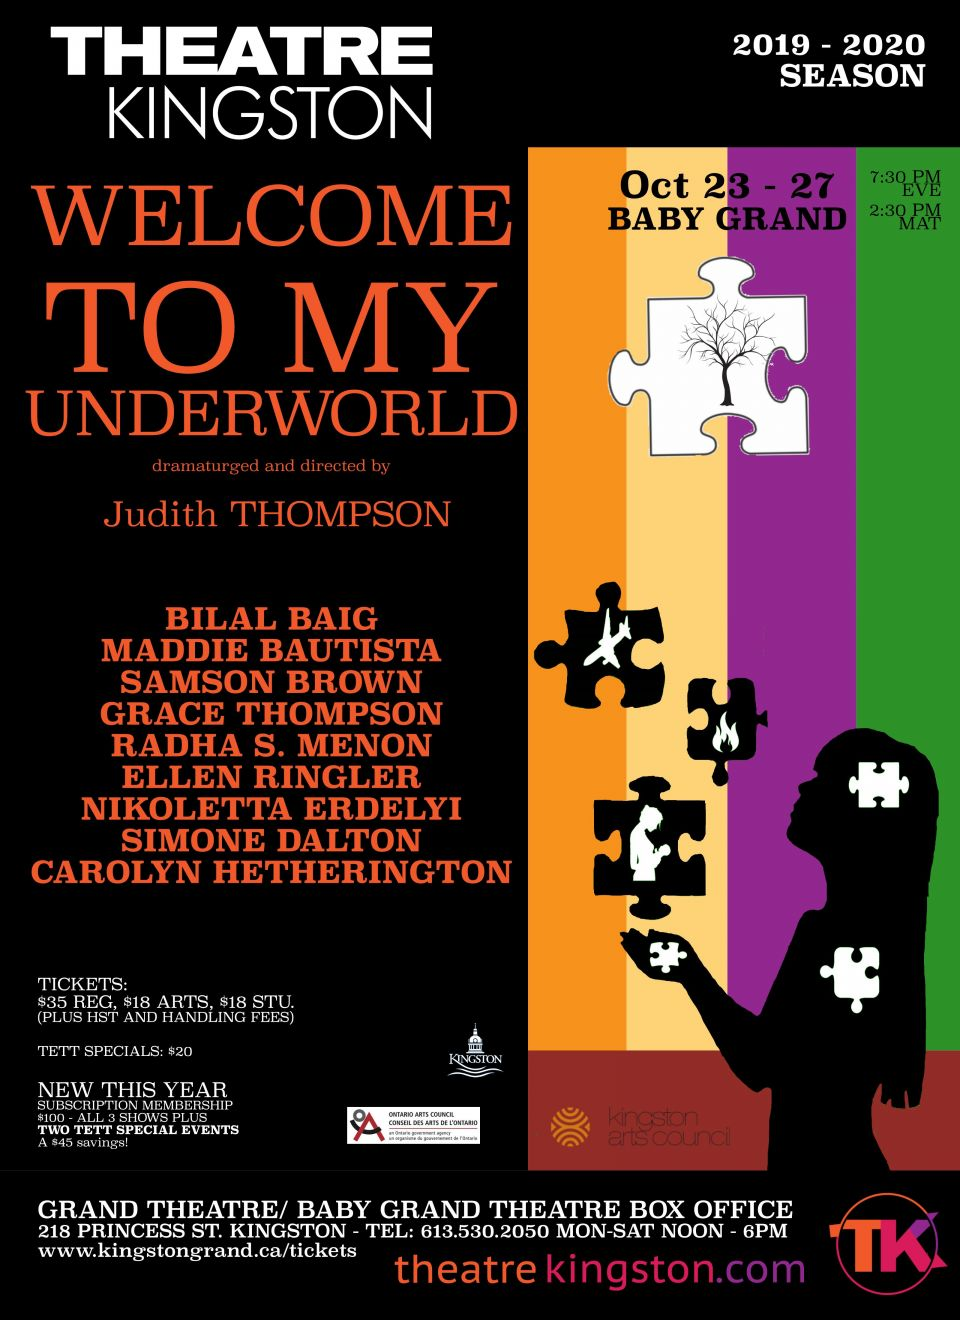 poster of Welcome to My Underworld